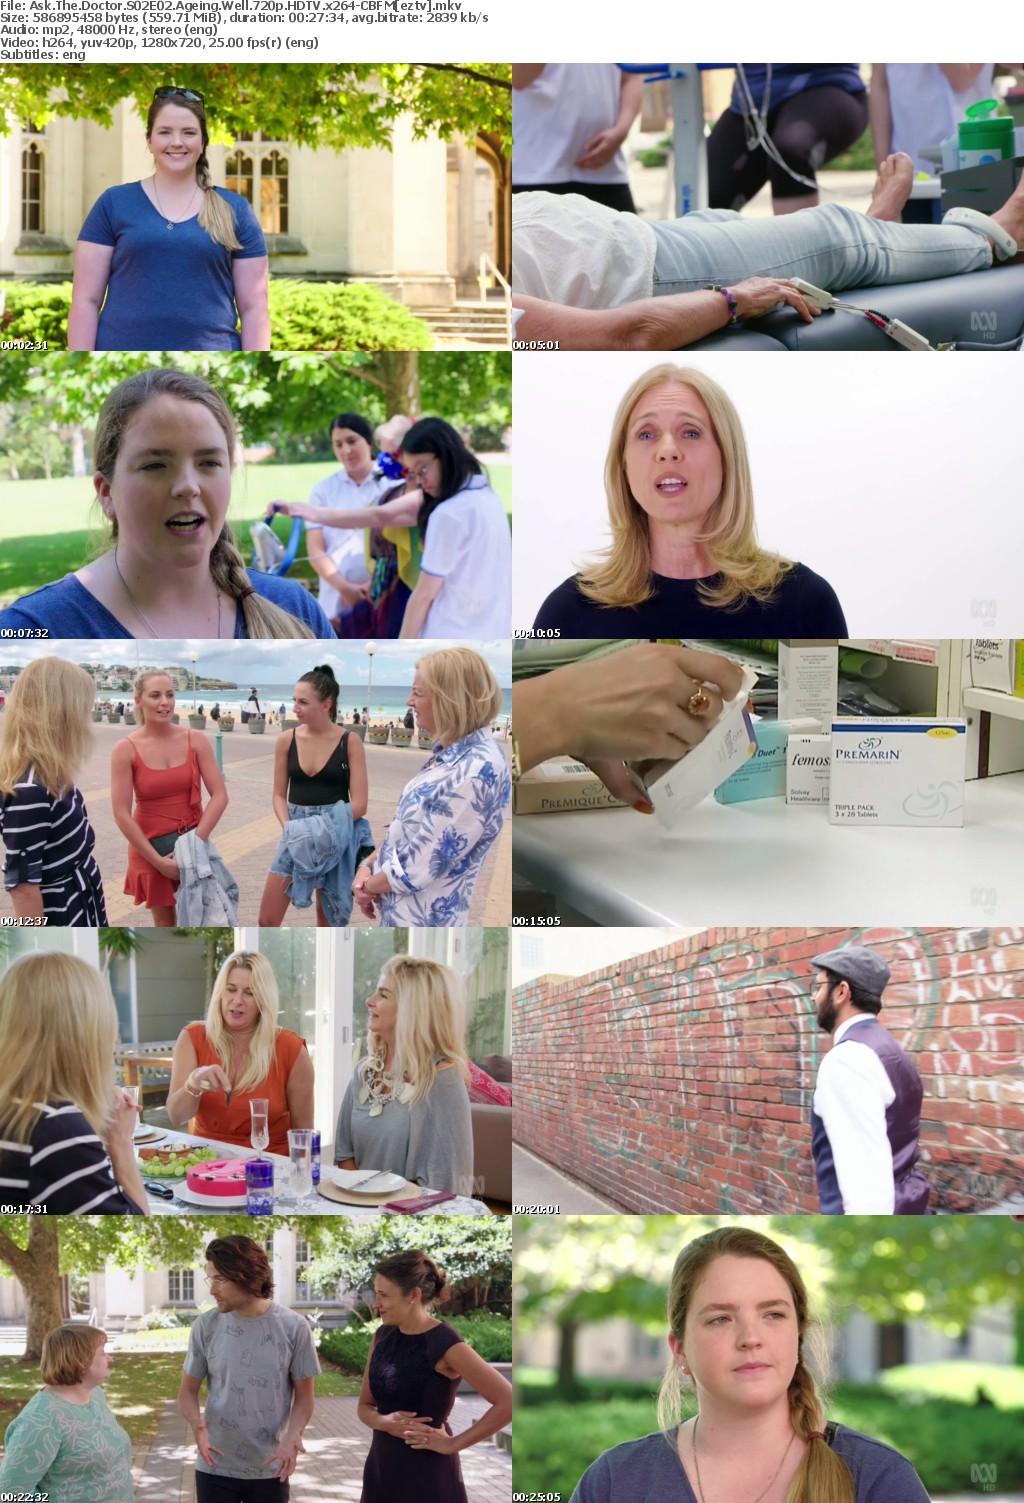 Ask The Doctor S02E02 Ageing Well 720p HDTV x264-CBFM